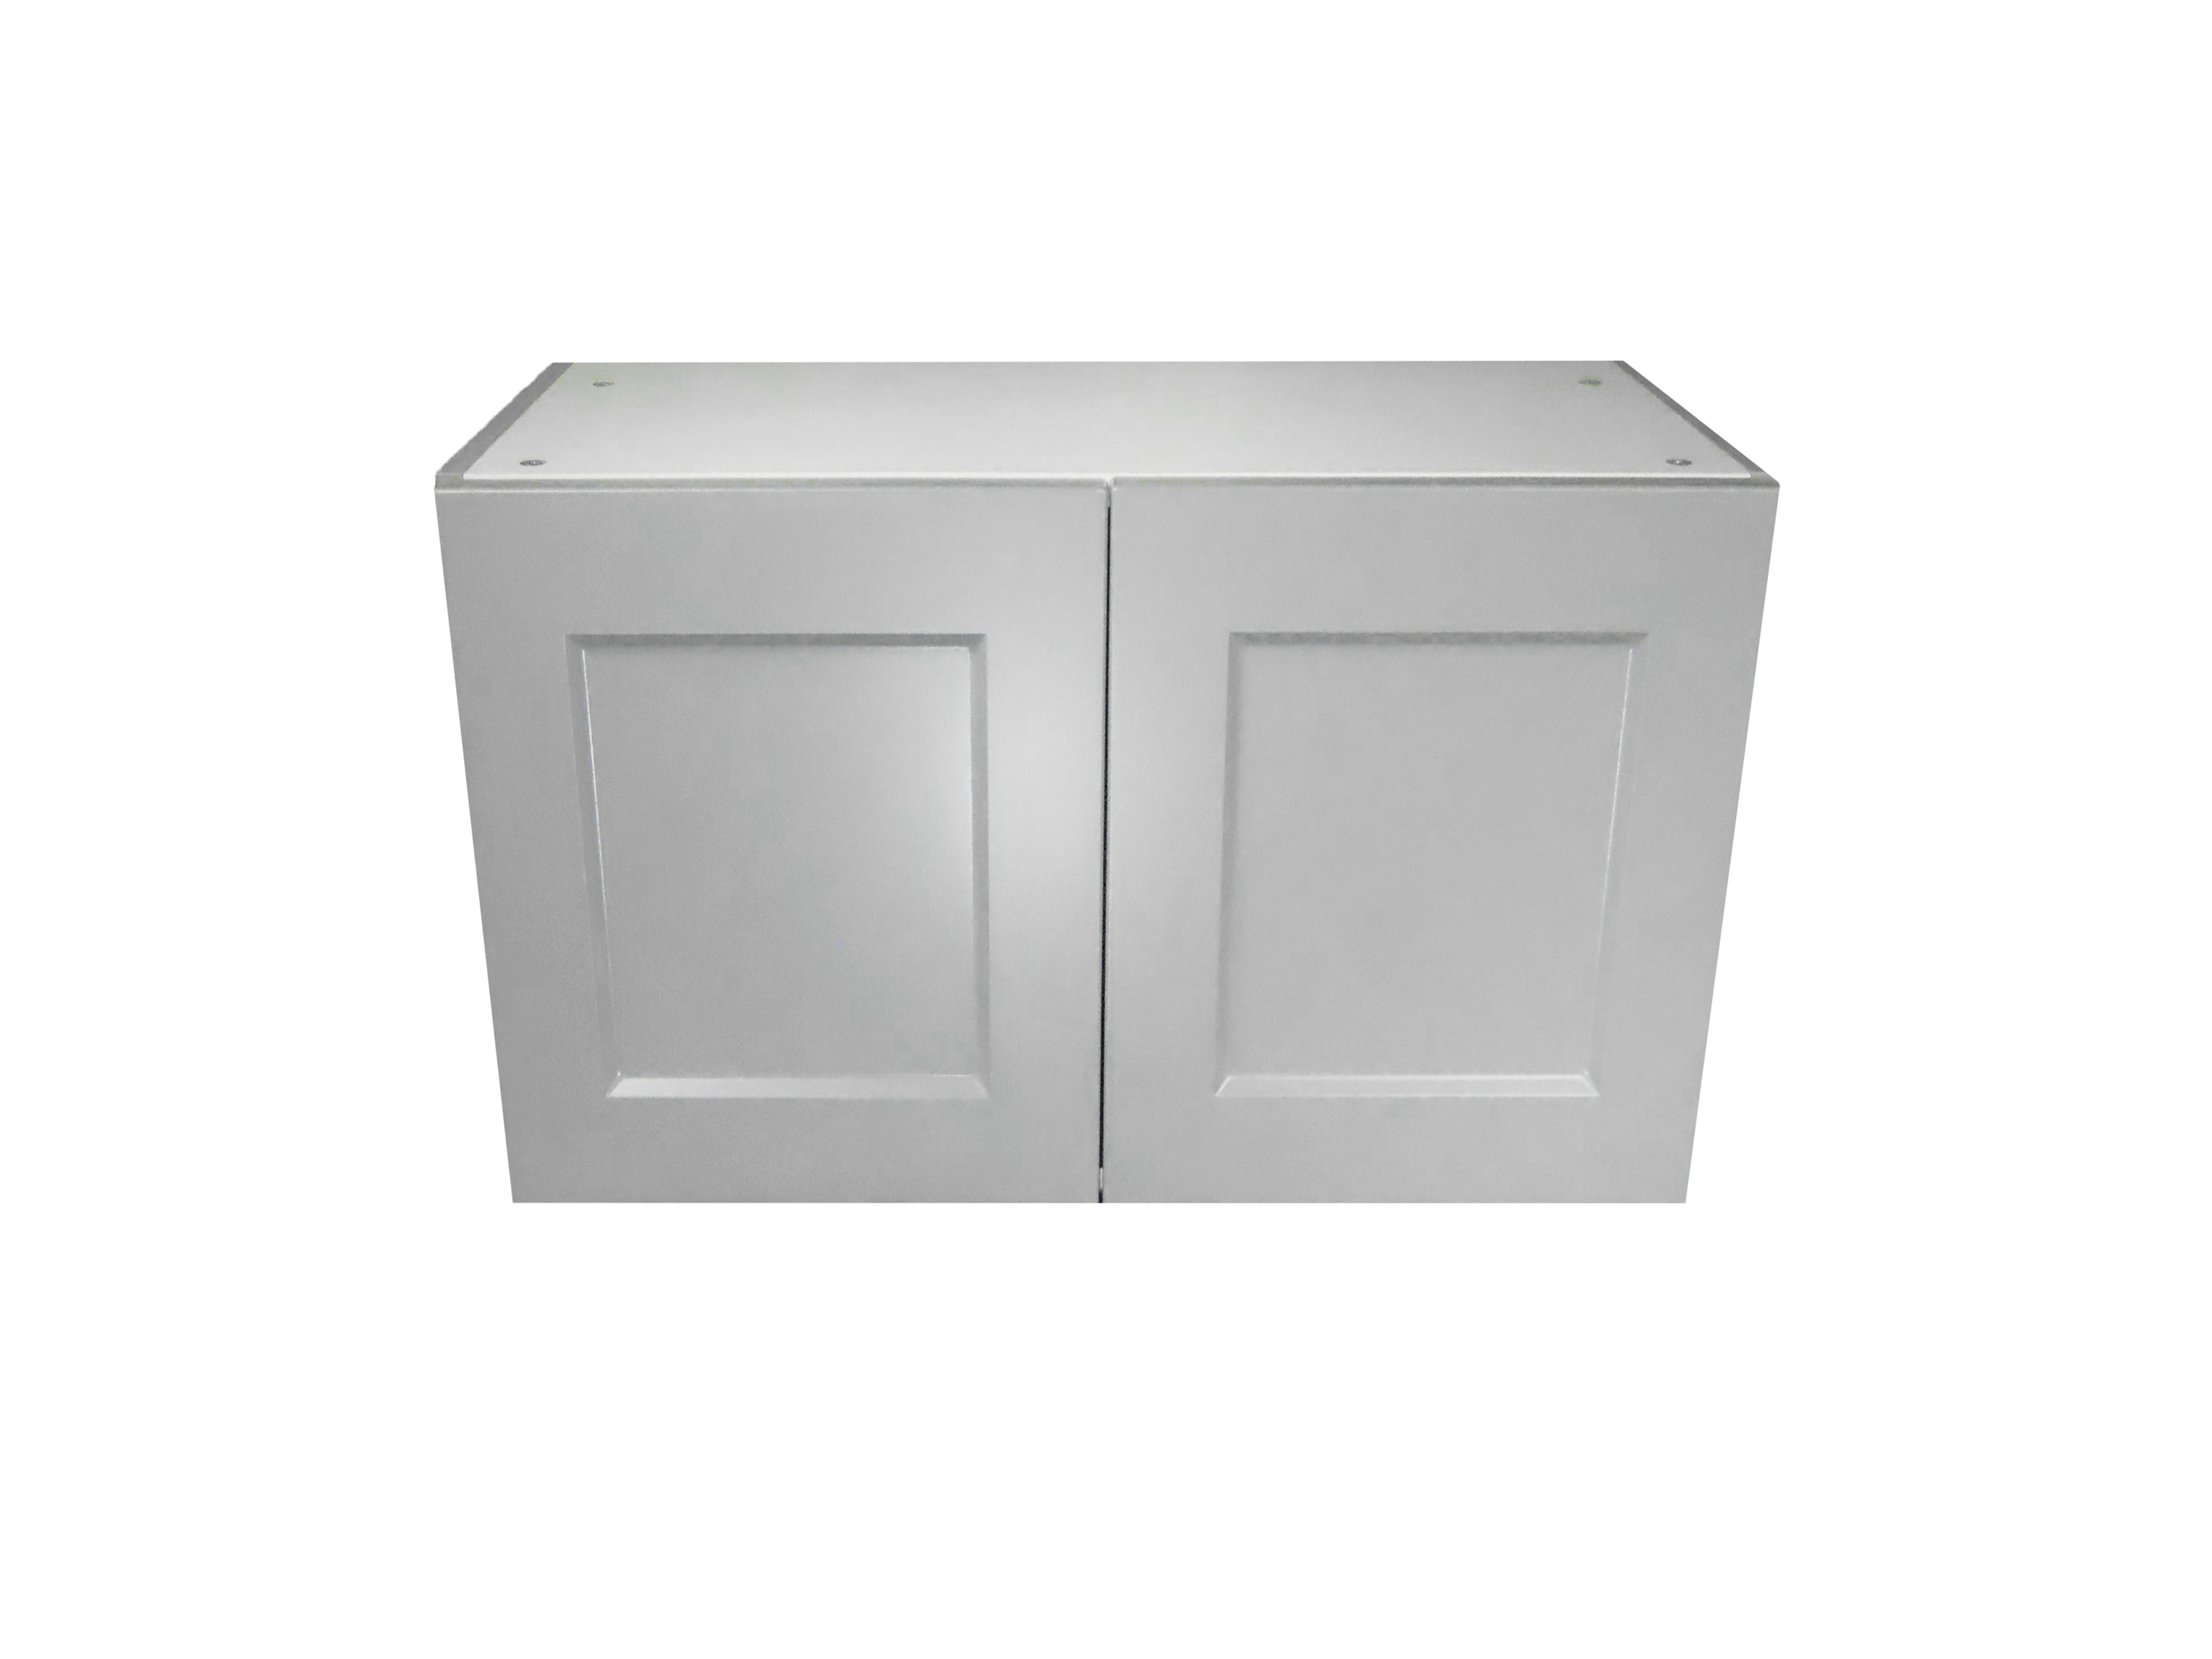 Appliance Wall Cabinet with 2 Doors / Whistler Grey / Flat Panel Grey / 33x18 Whistler Grey 0